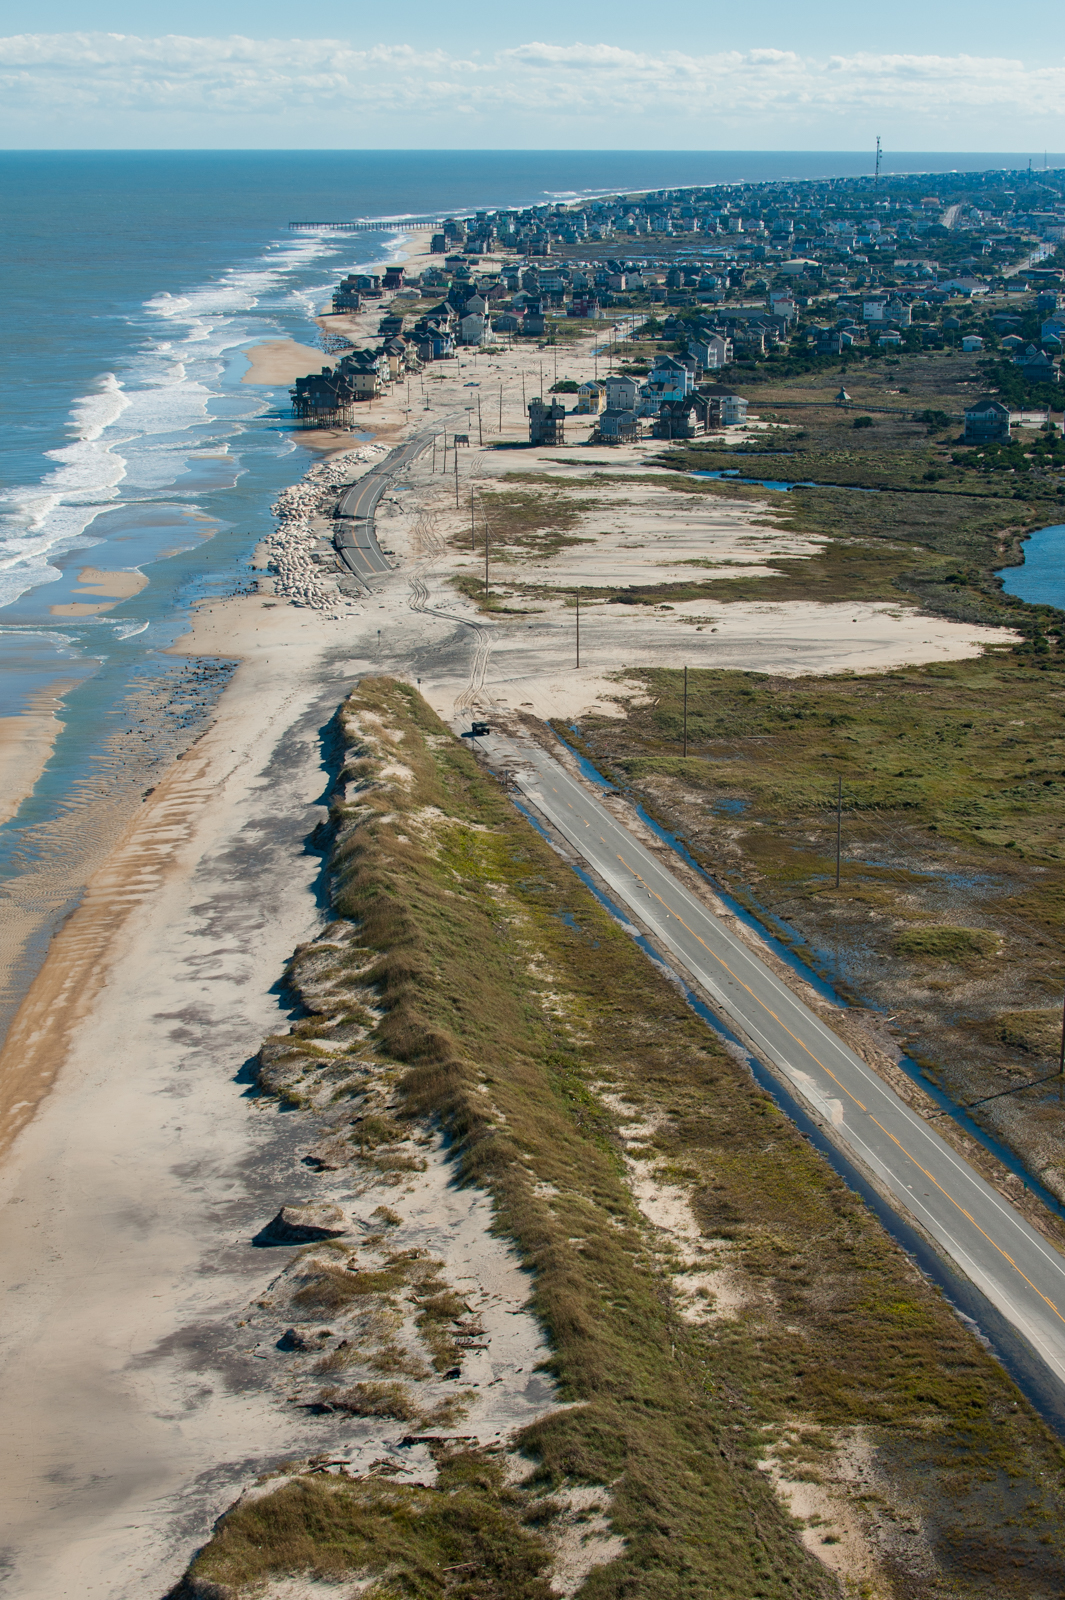 Aerial shot of Mirlo Beach looking South towards Roadanthe after Hurricane Sandy in 2012.